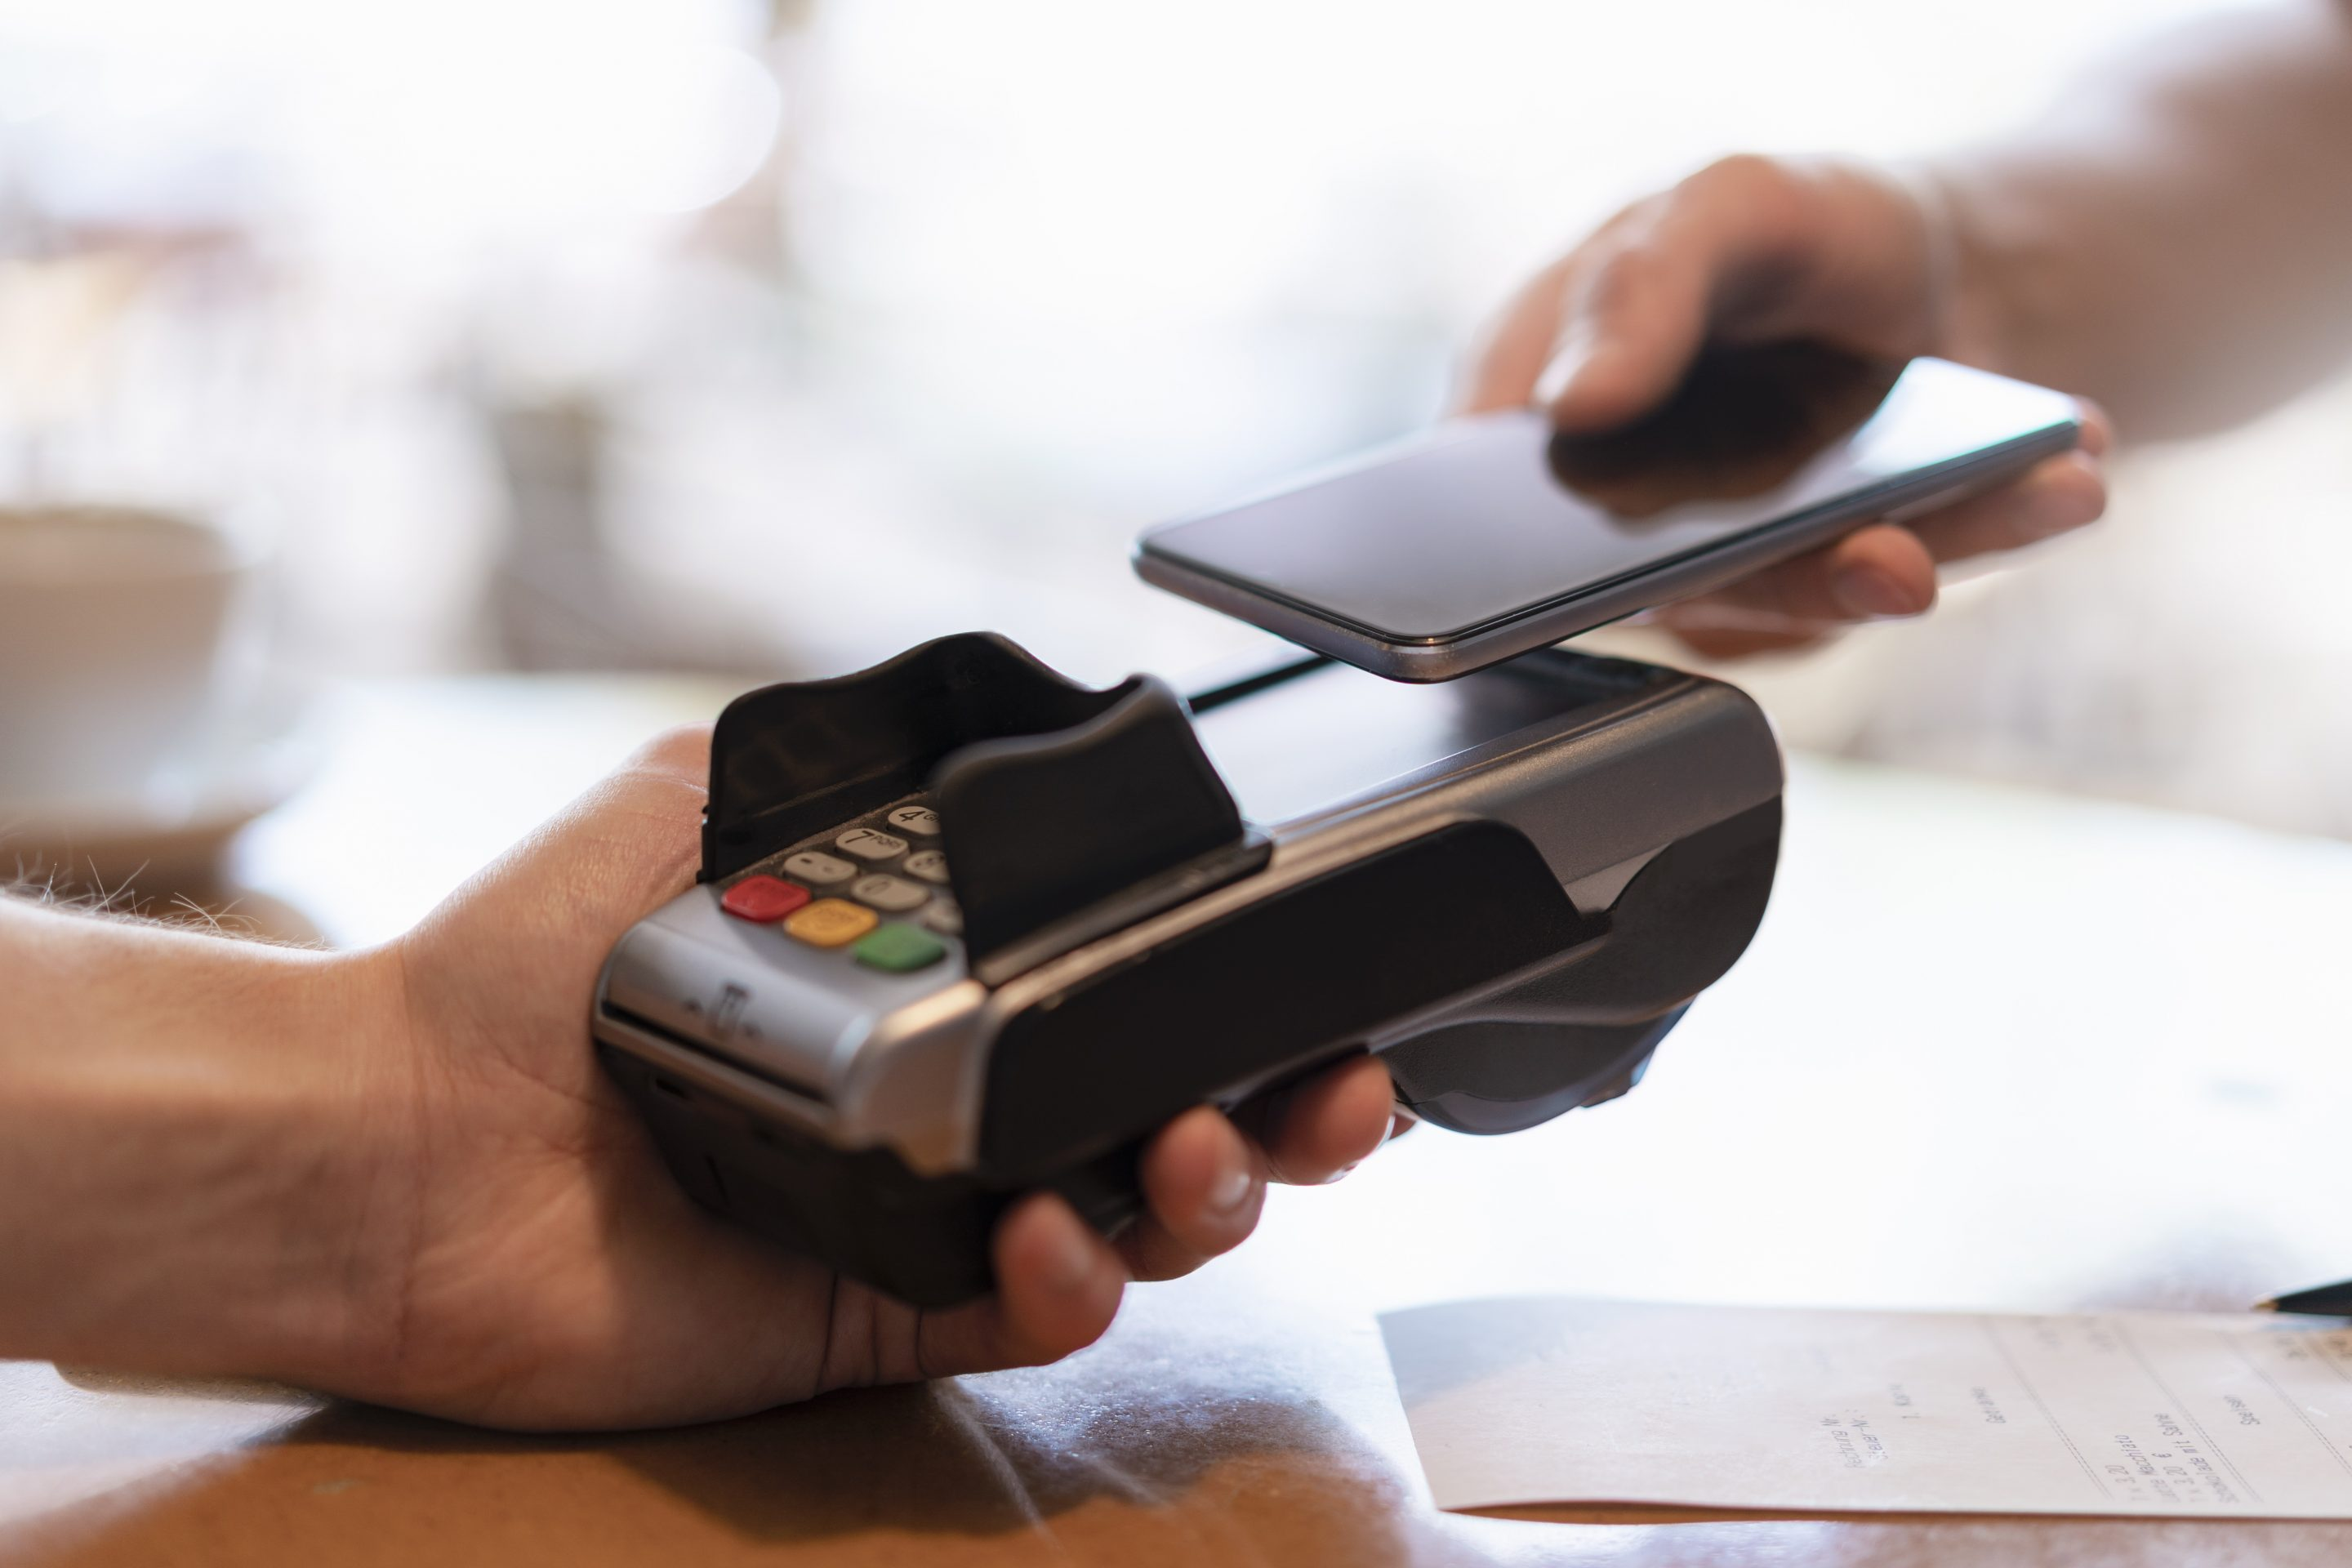 Are cashless stores and restaurants fair? New York City Council says no